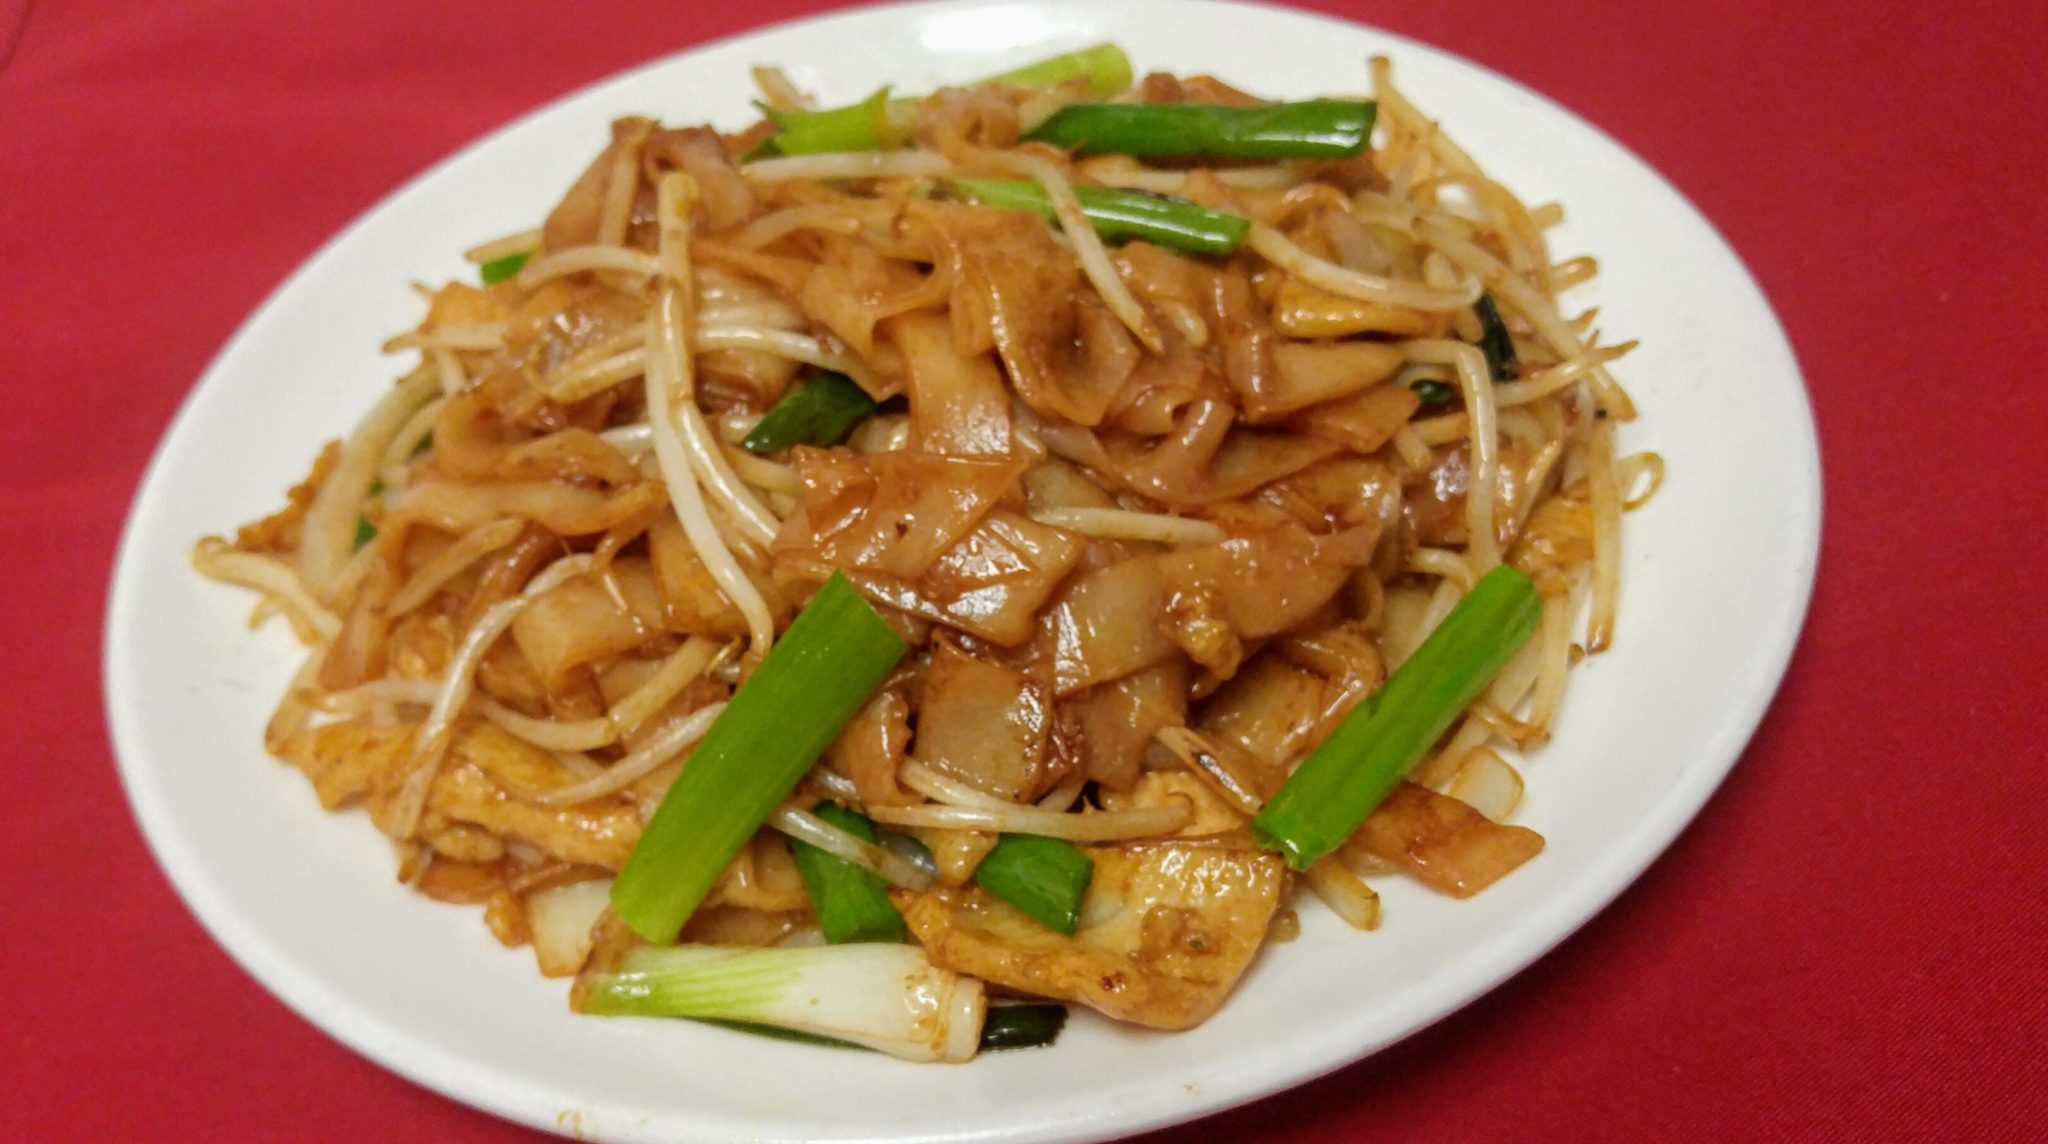 House Special Chow Mein Delicious Chinese food...